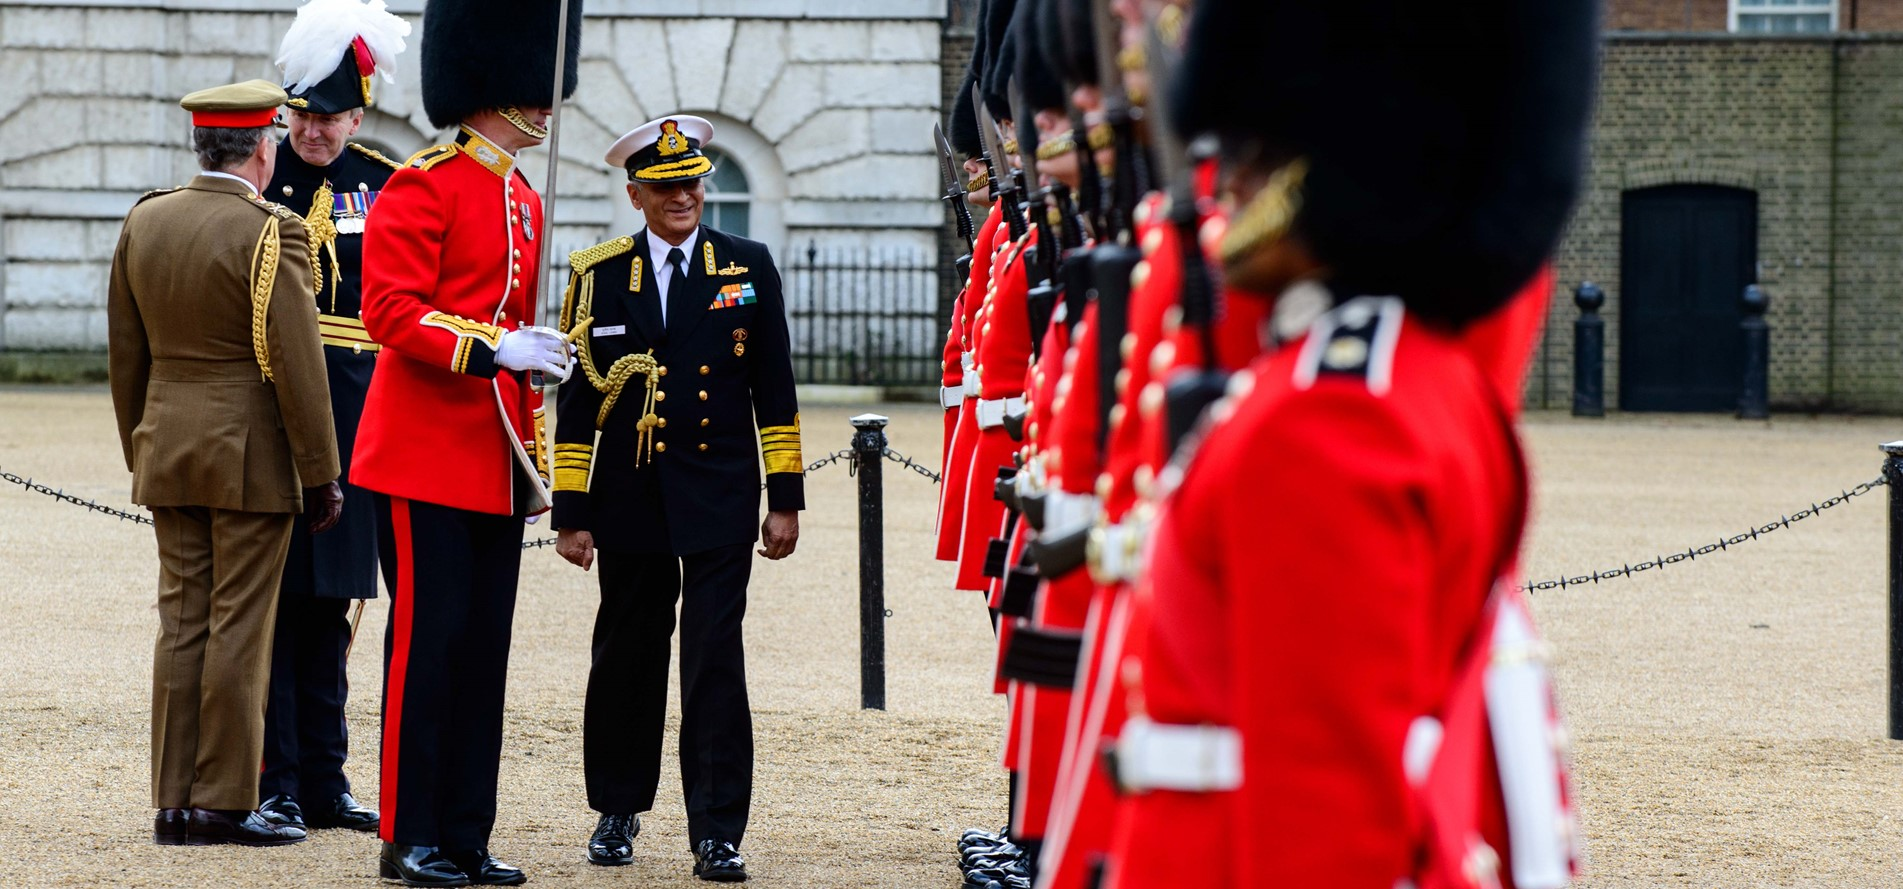 APOLOND-2019-020-0096-Indian Guard Of Honour-PR.JPG